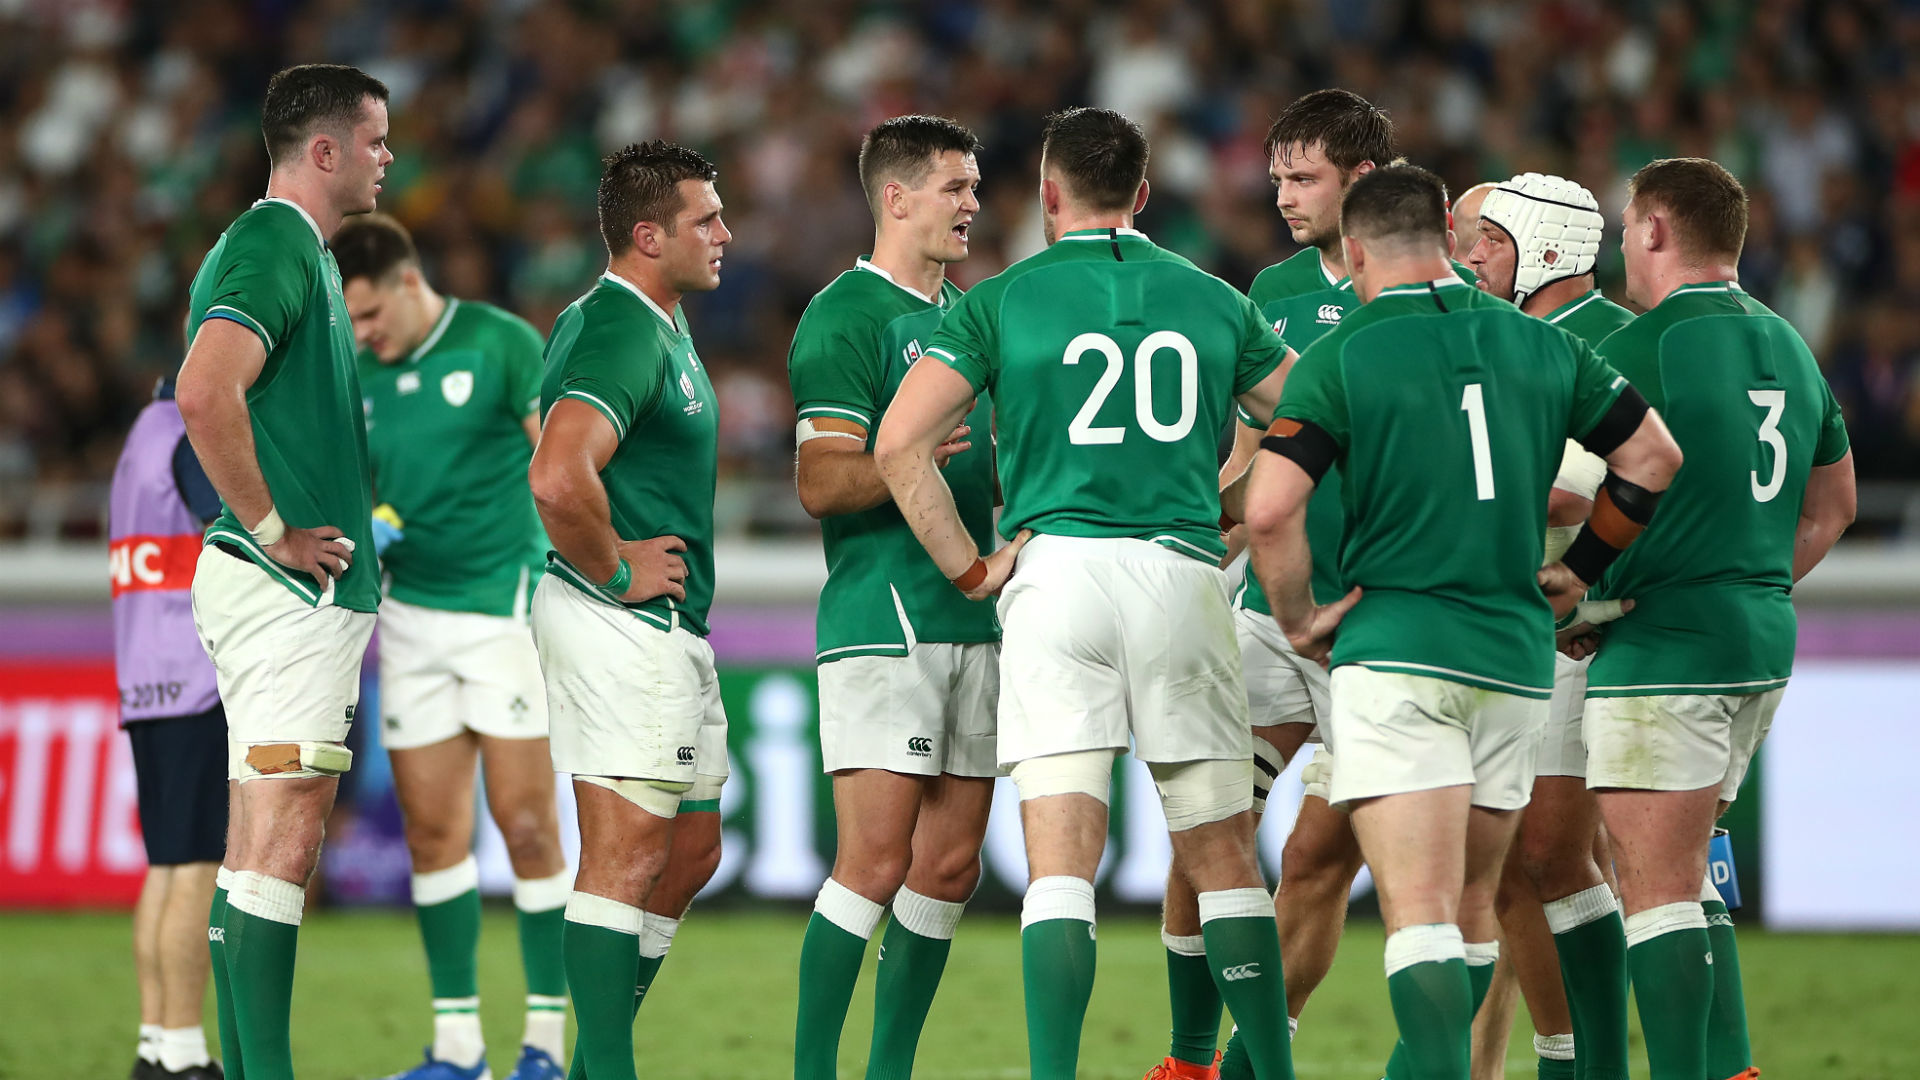 Rugby World Cup 2019: Sexton and Best lead the charge as Ireland prove their credentials